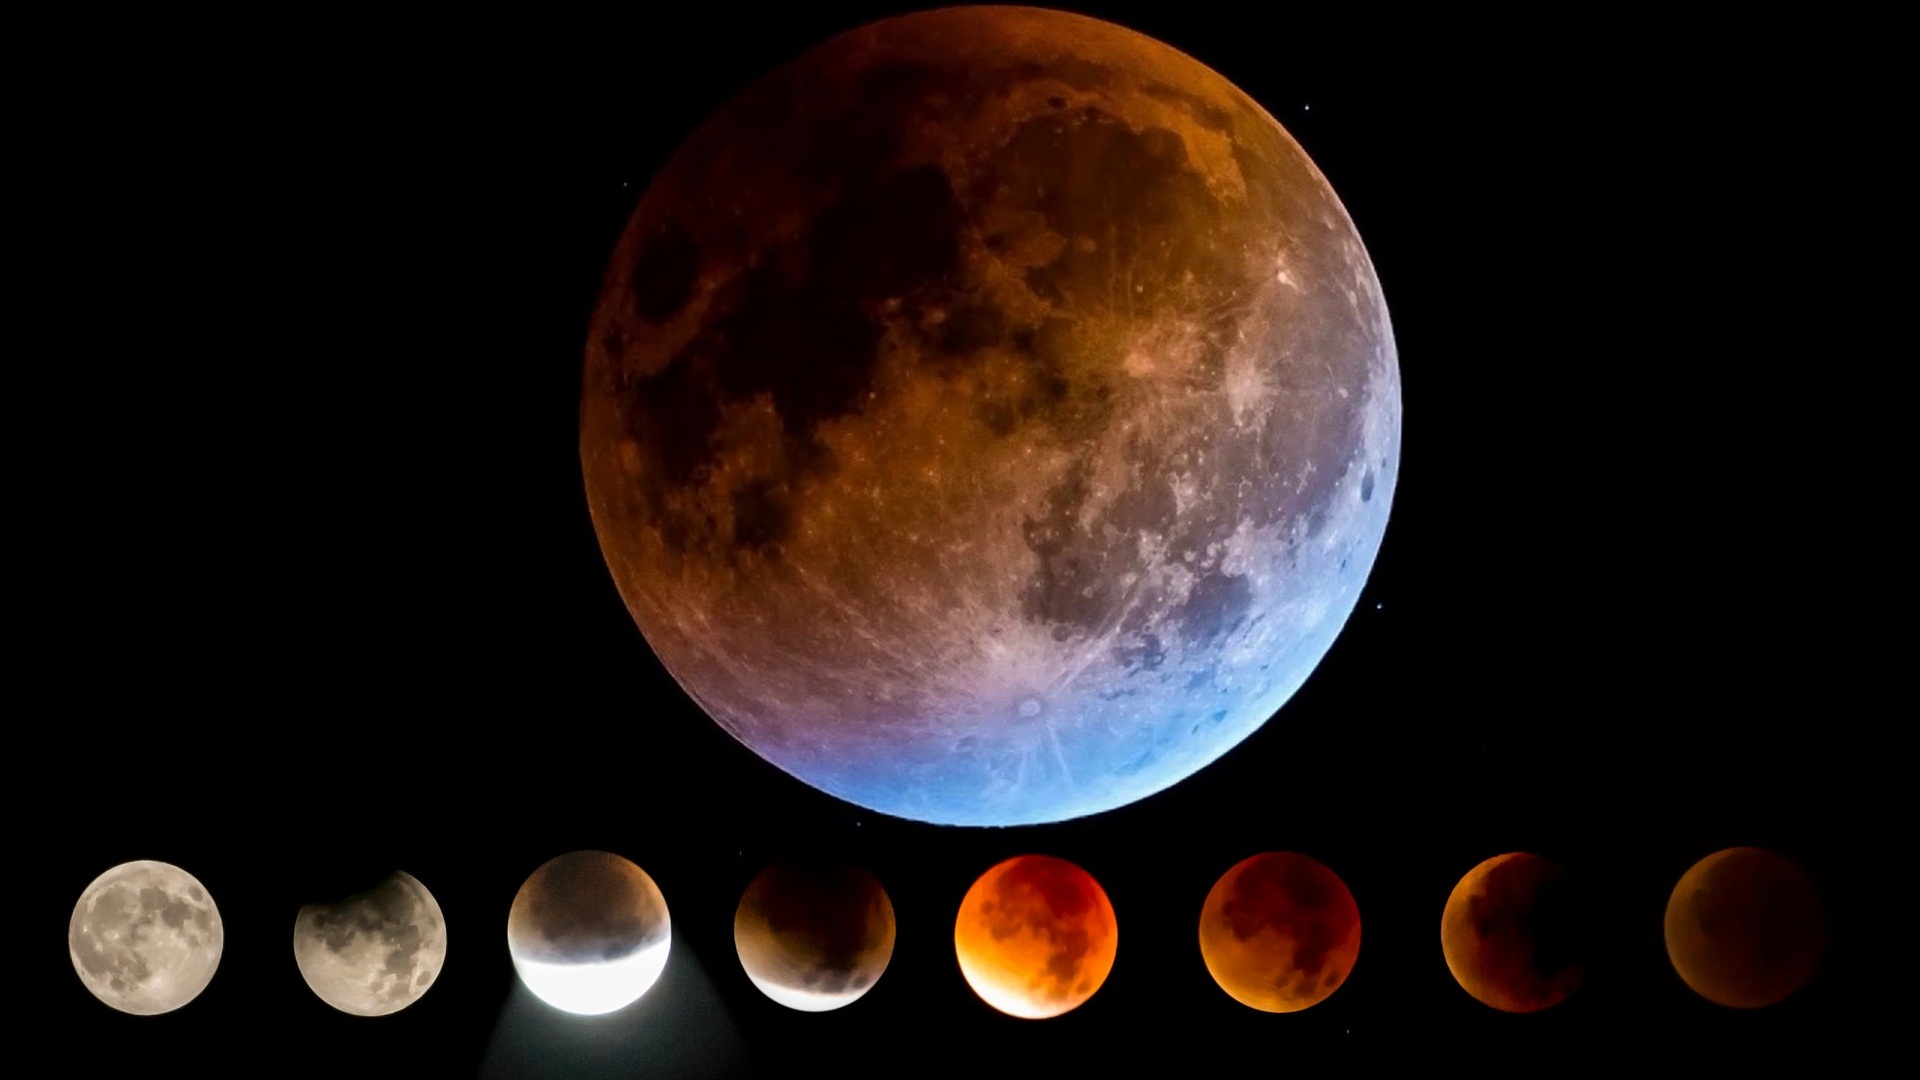 Super Blue Blood Moon Lunar Eclipse Wallpaper 2020 Cute Wallpapers 1920x1080